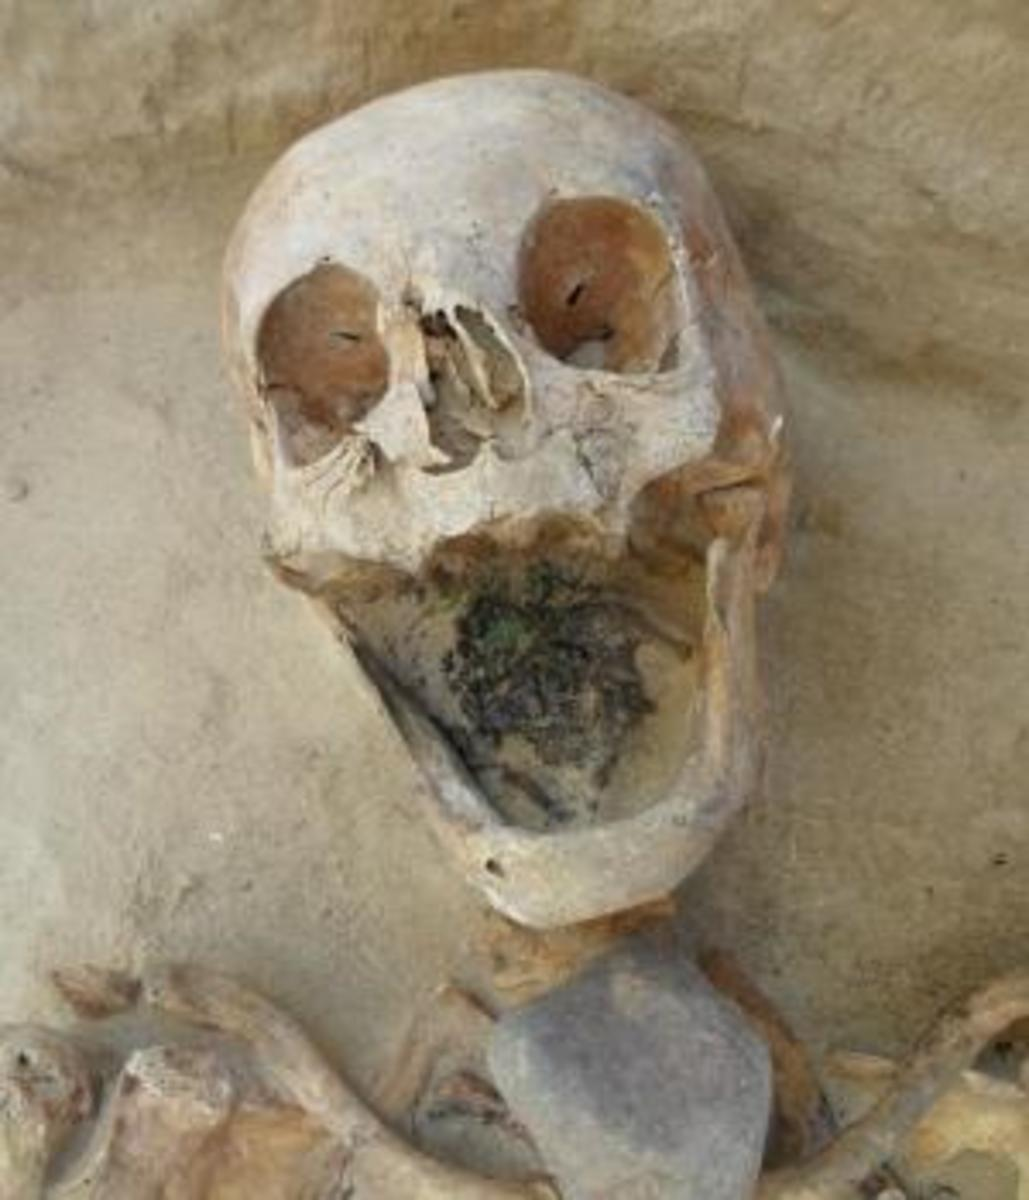 Another female skeleton, this one with a stone placed on her throat (Credit: Amy Scott/Gregoricka)